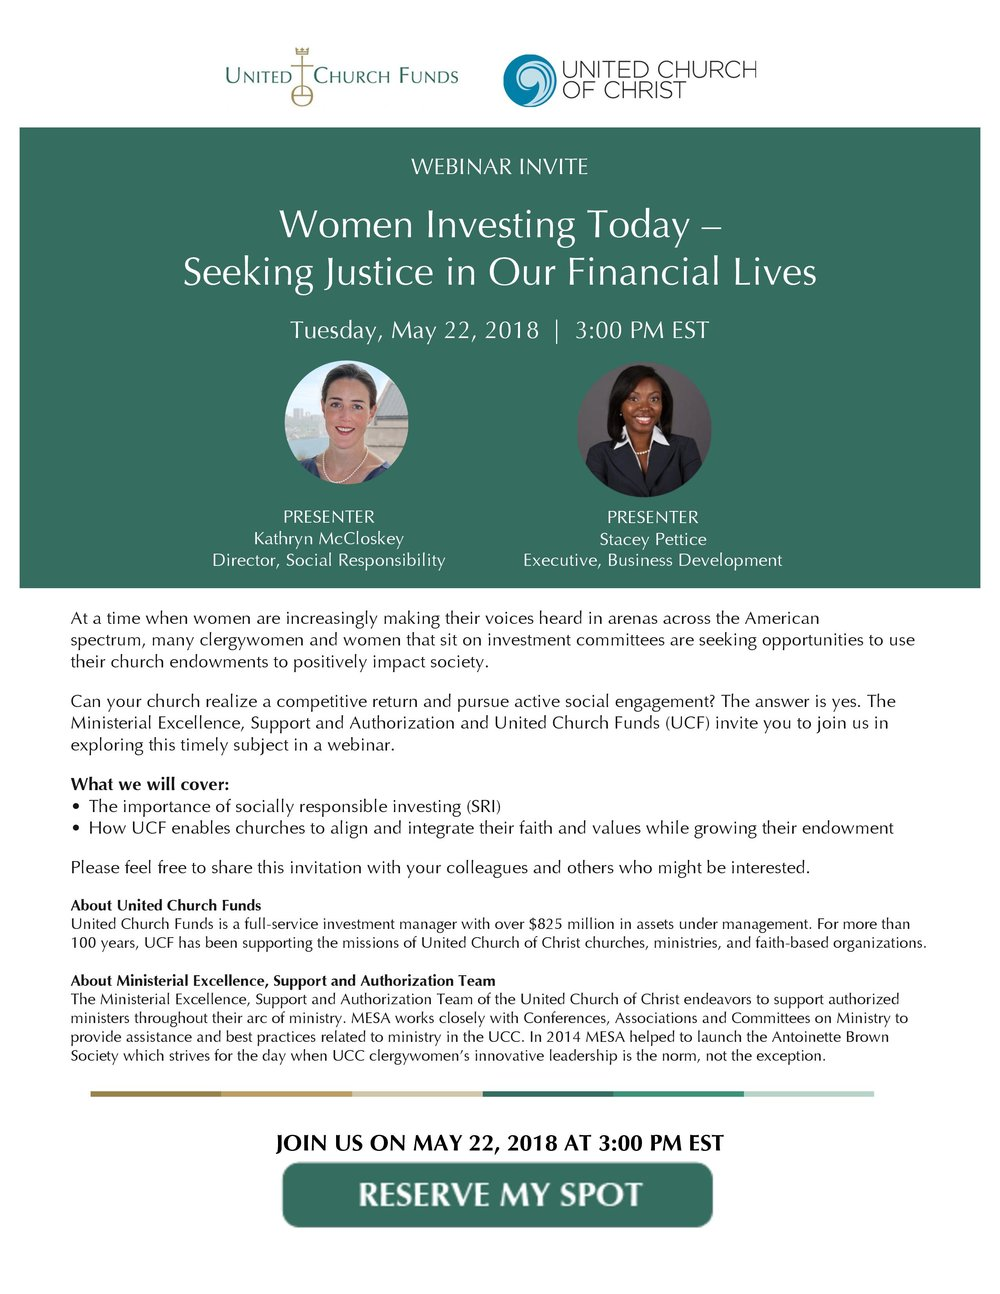 UCC women investing today webinar invitation.jpg